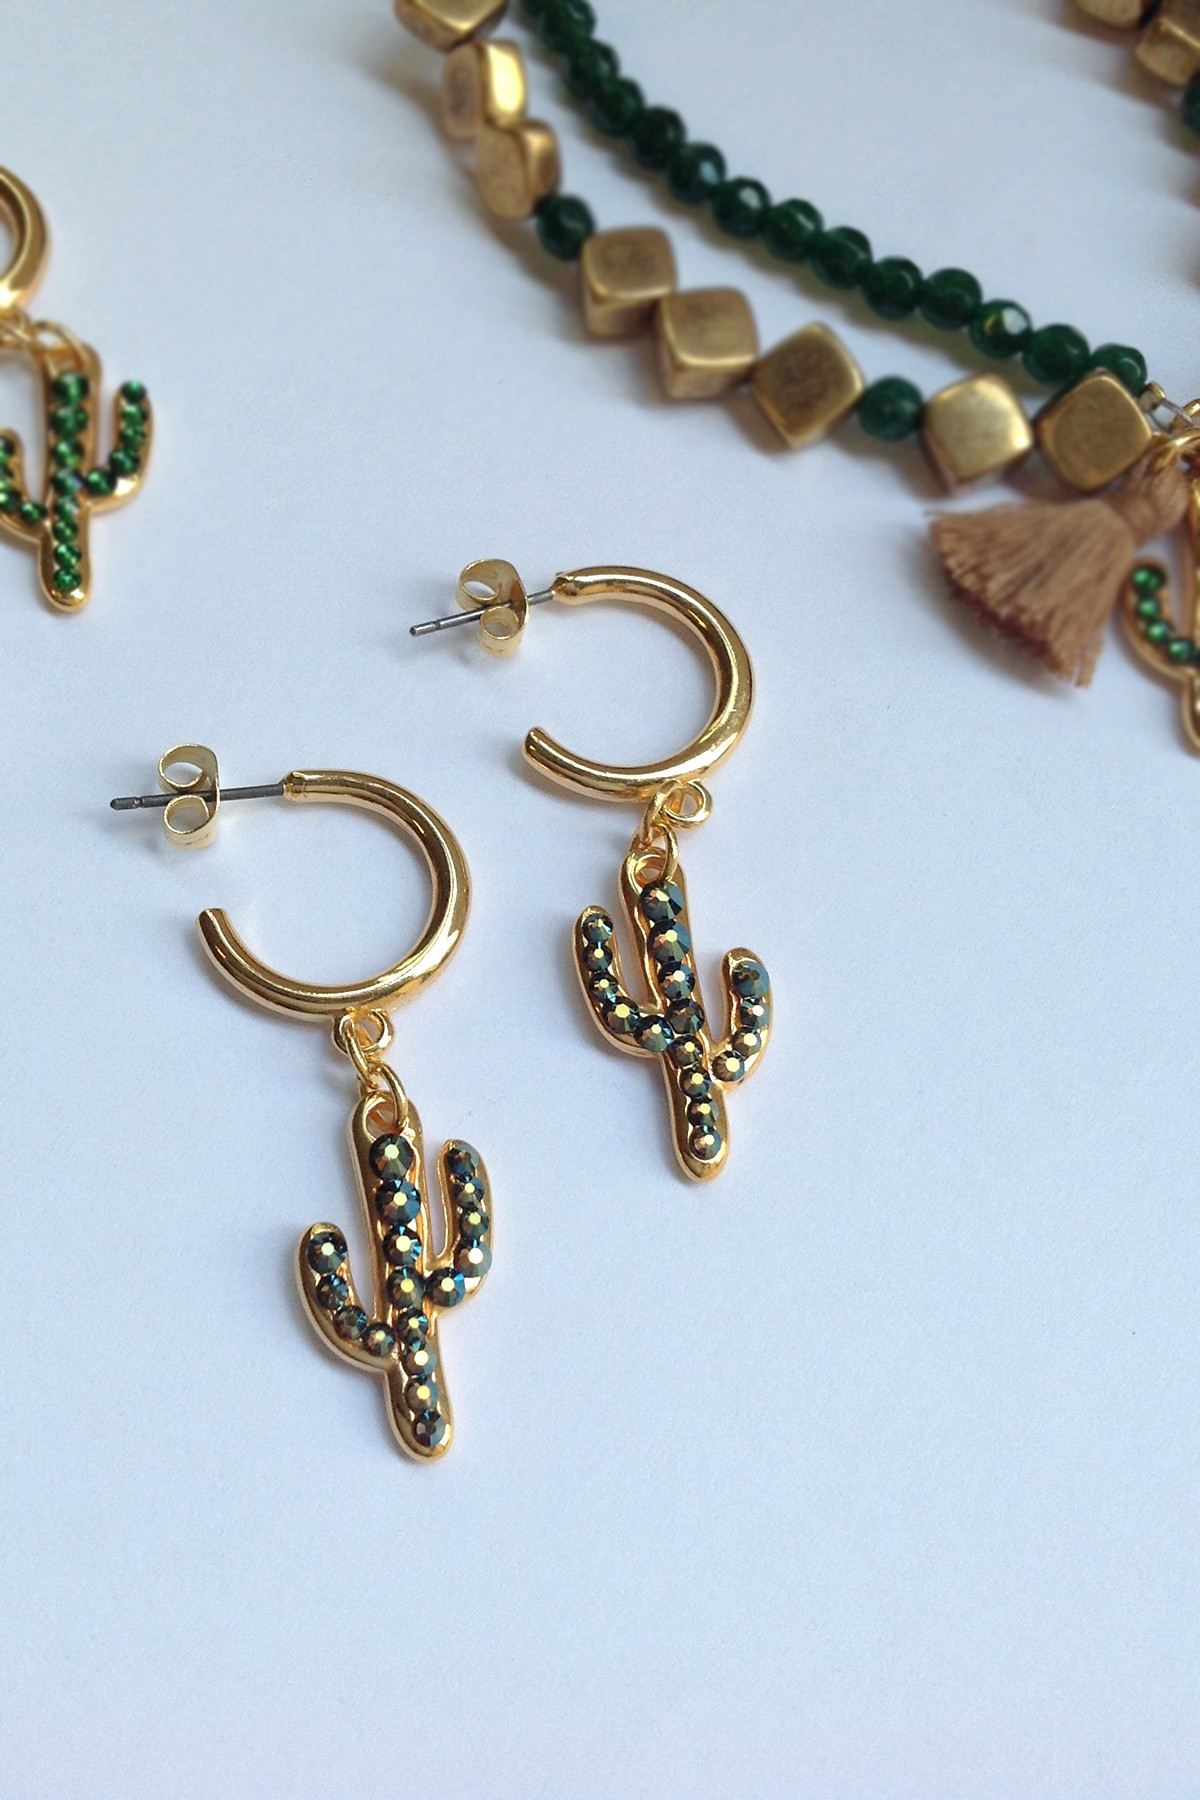 Hoops with cactus charm